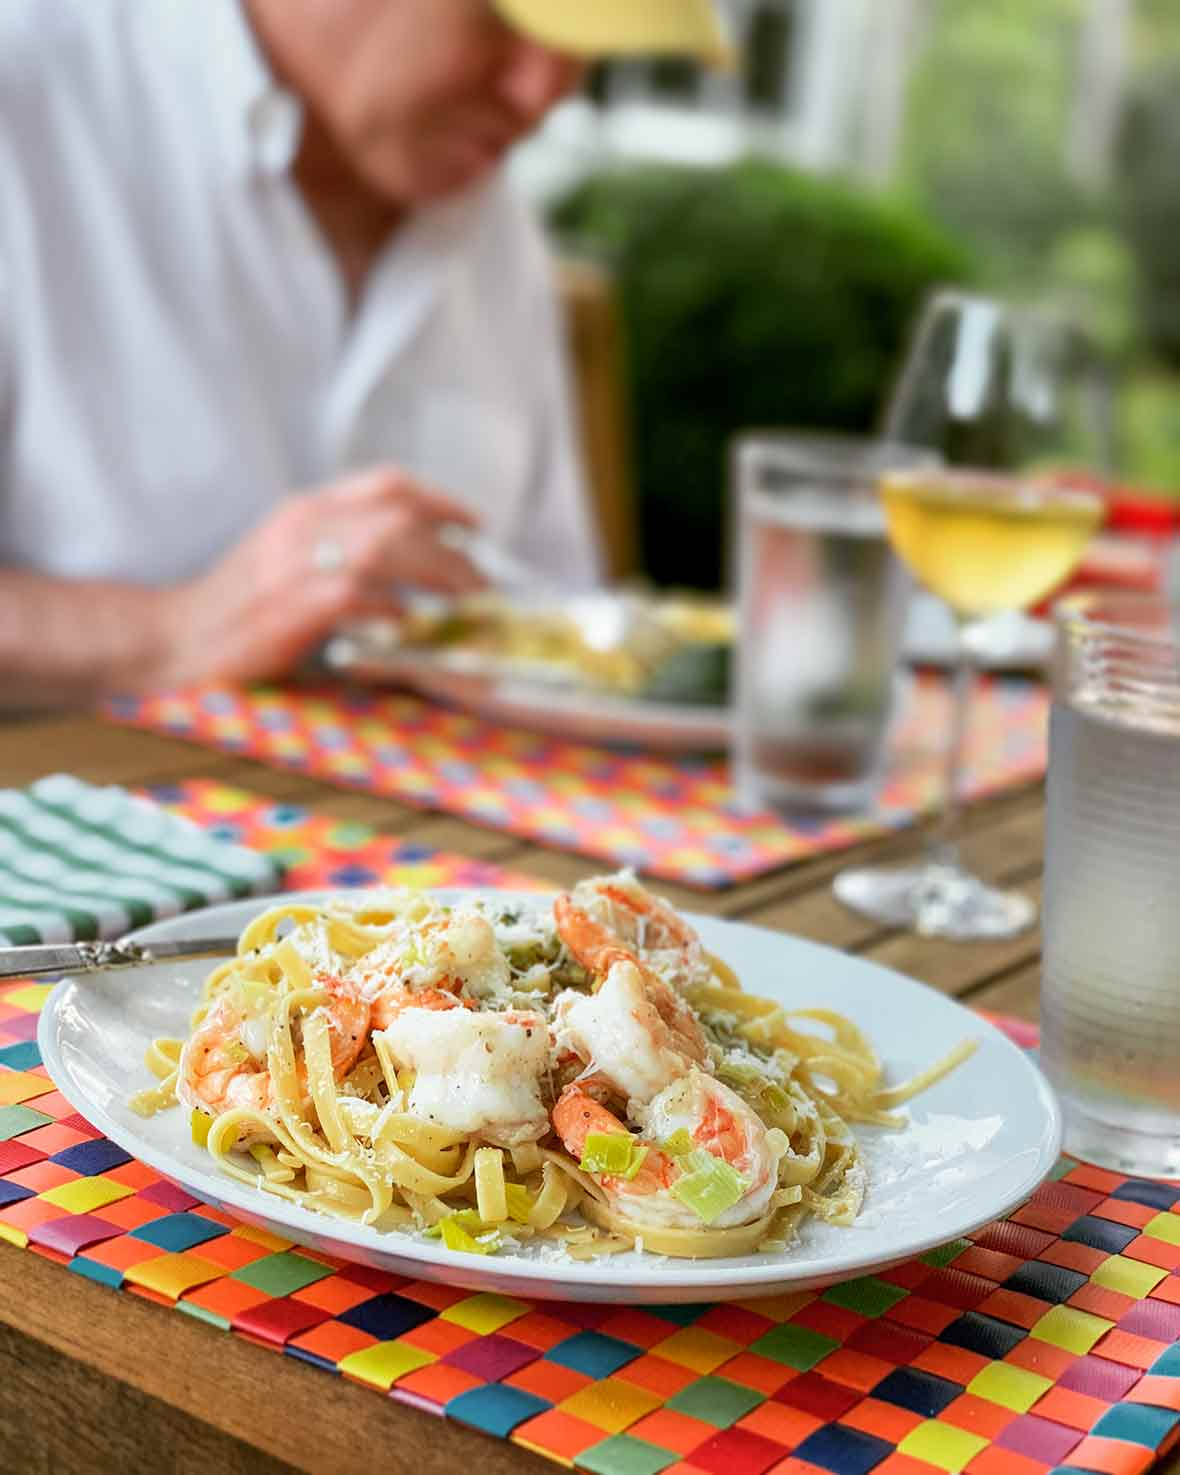 A white plate filled with shrimp and leek pasta on a multi-colored woven placemat.